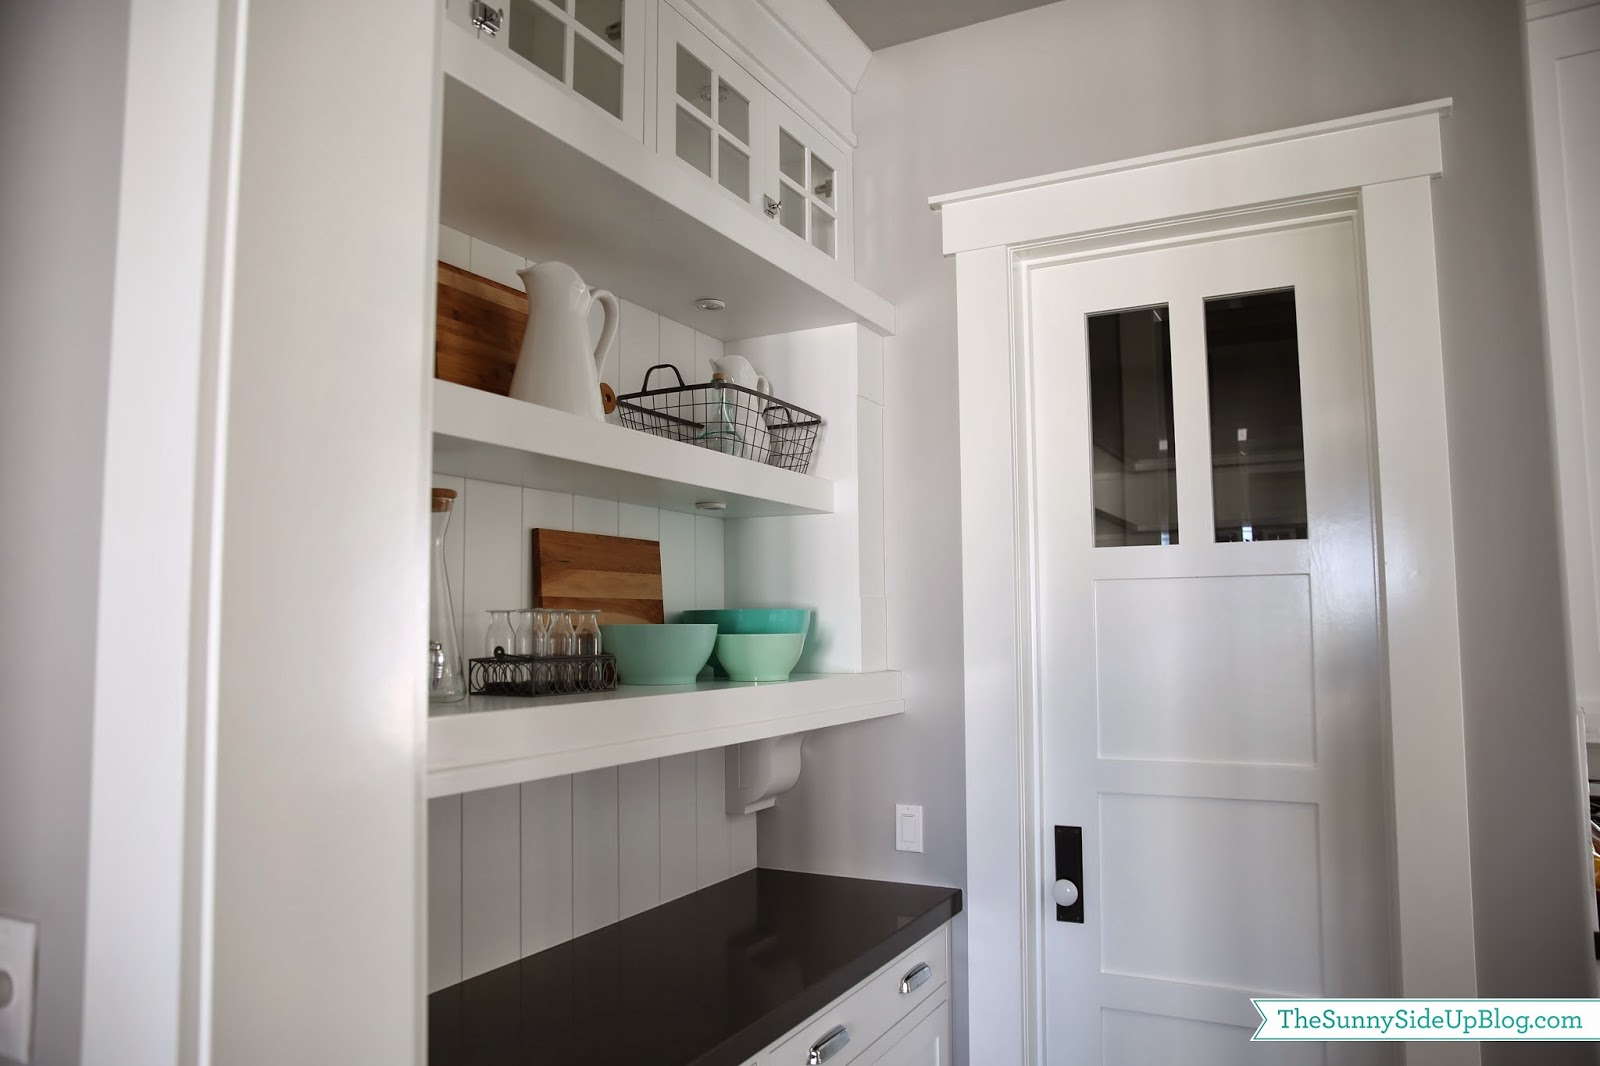 Butler's Pantry Shelves (decorated!) - The Sunny Side Up Blog